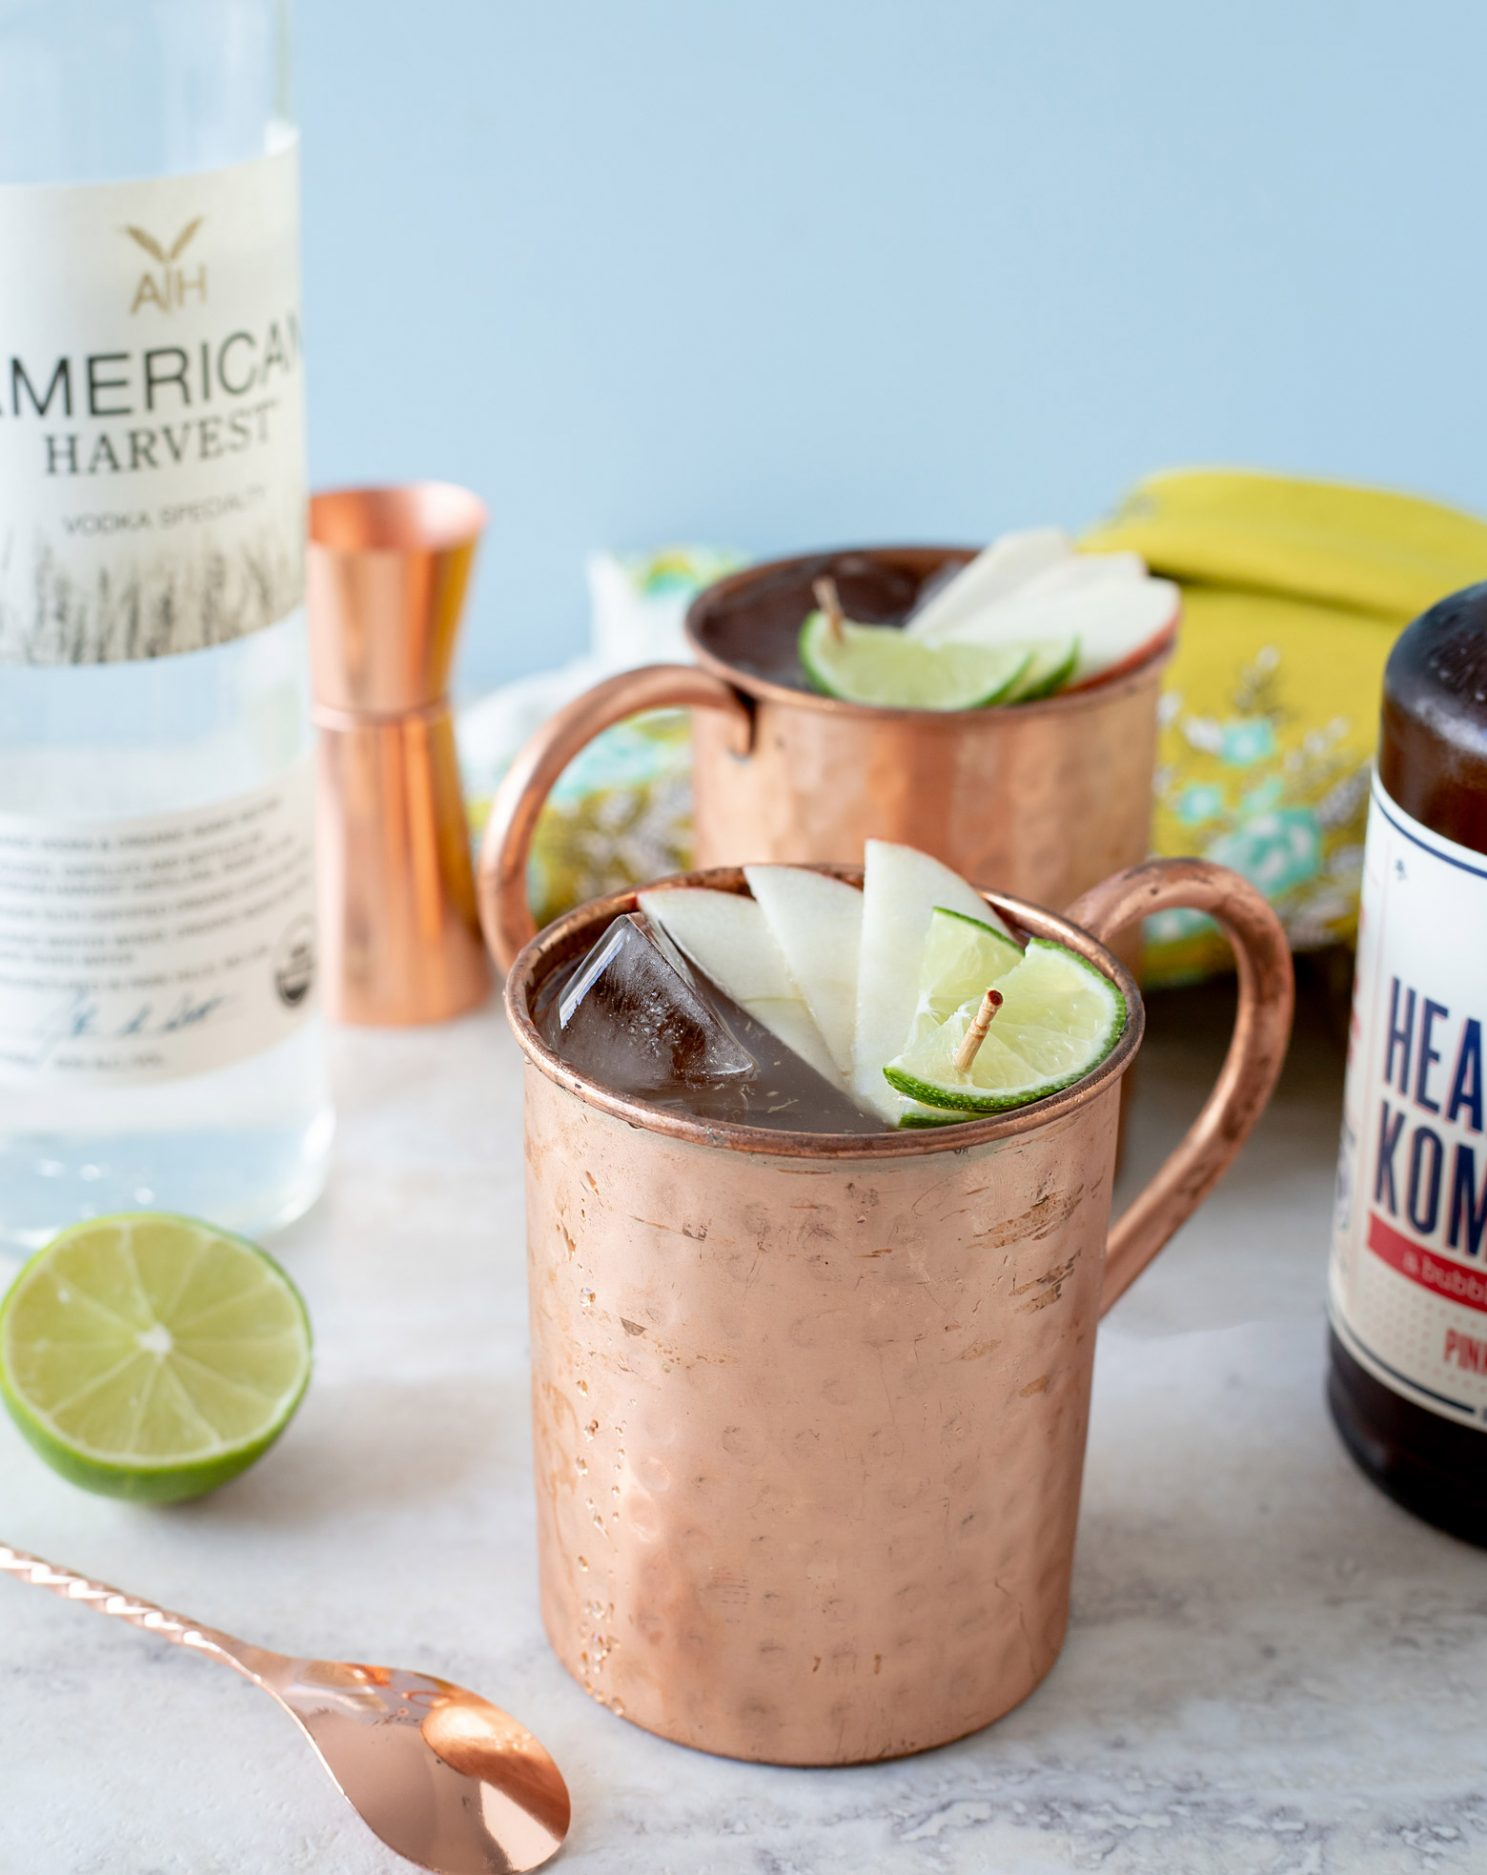 This vodka and kombucha cocktail uses Pink Lady Apple Health-Ade Kombucha for a sparkling and fruity take on a Moscow Mule. #ElleTalk #Cocktail #Kombucha #Vodka #Mule